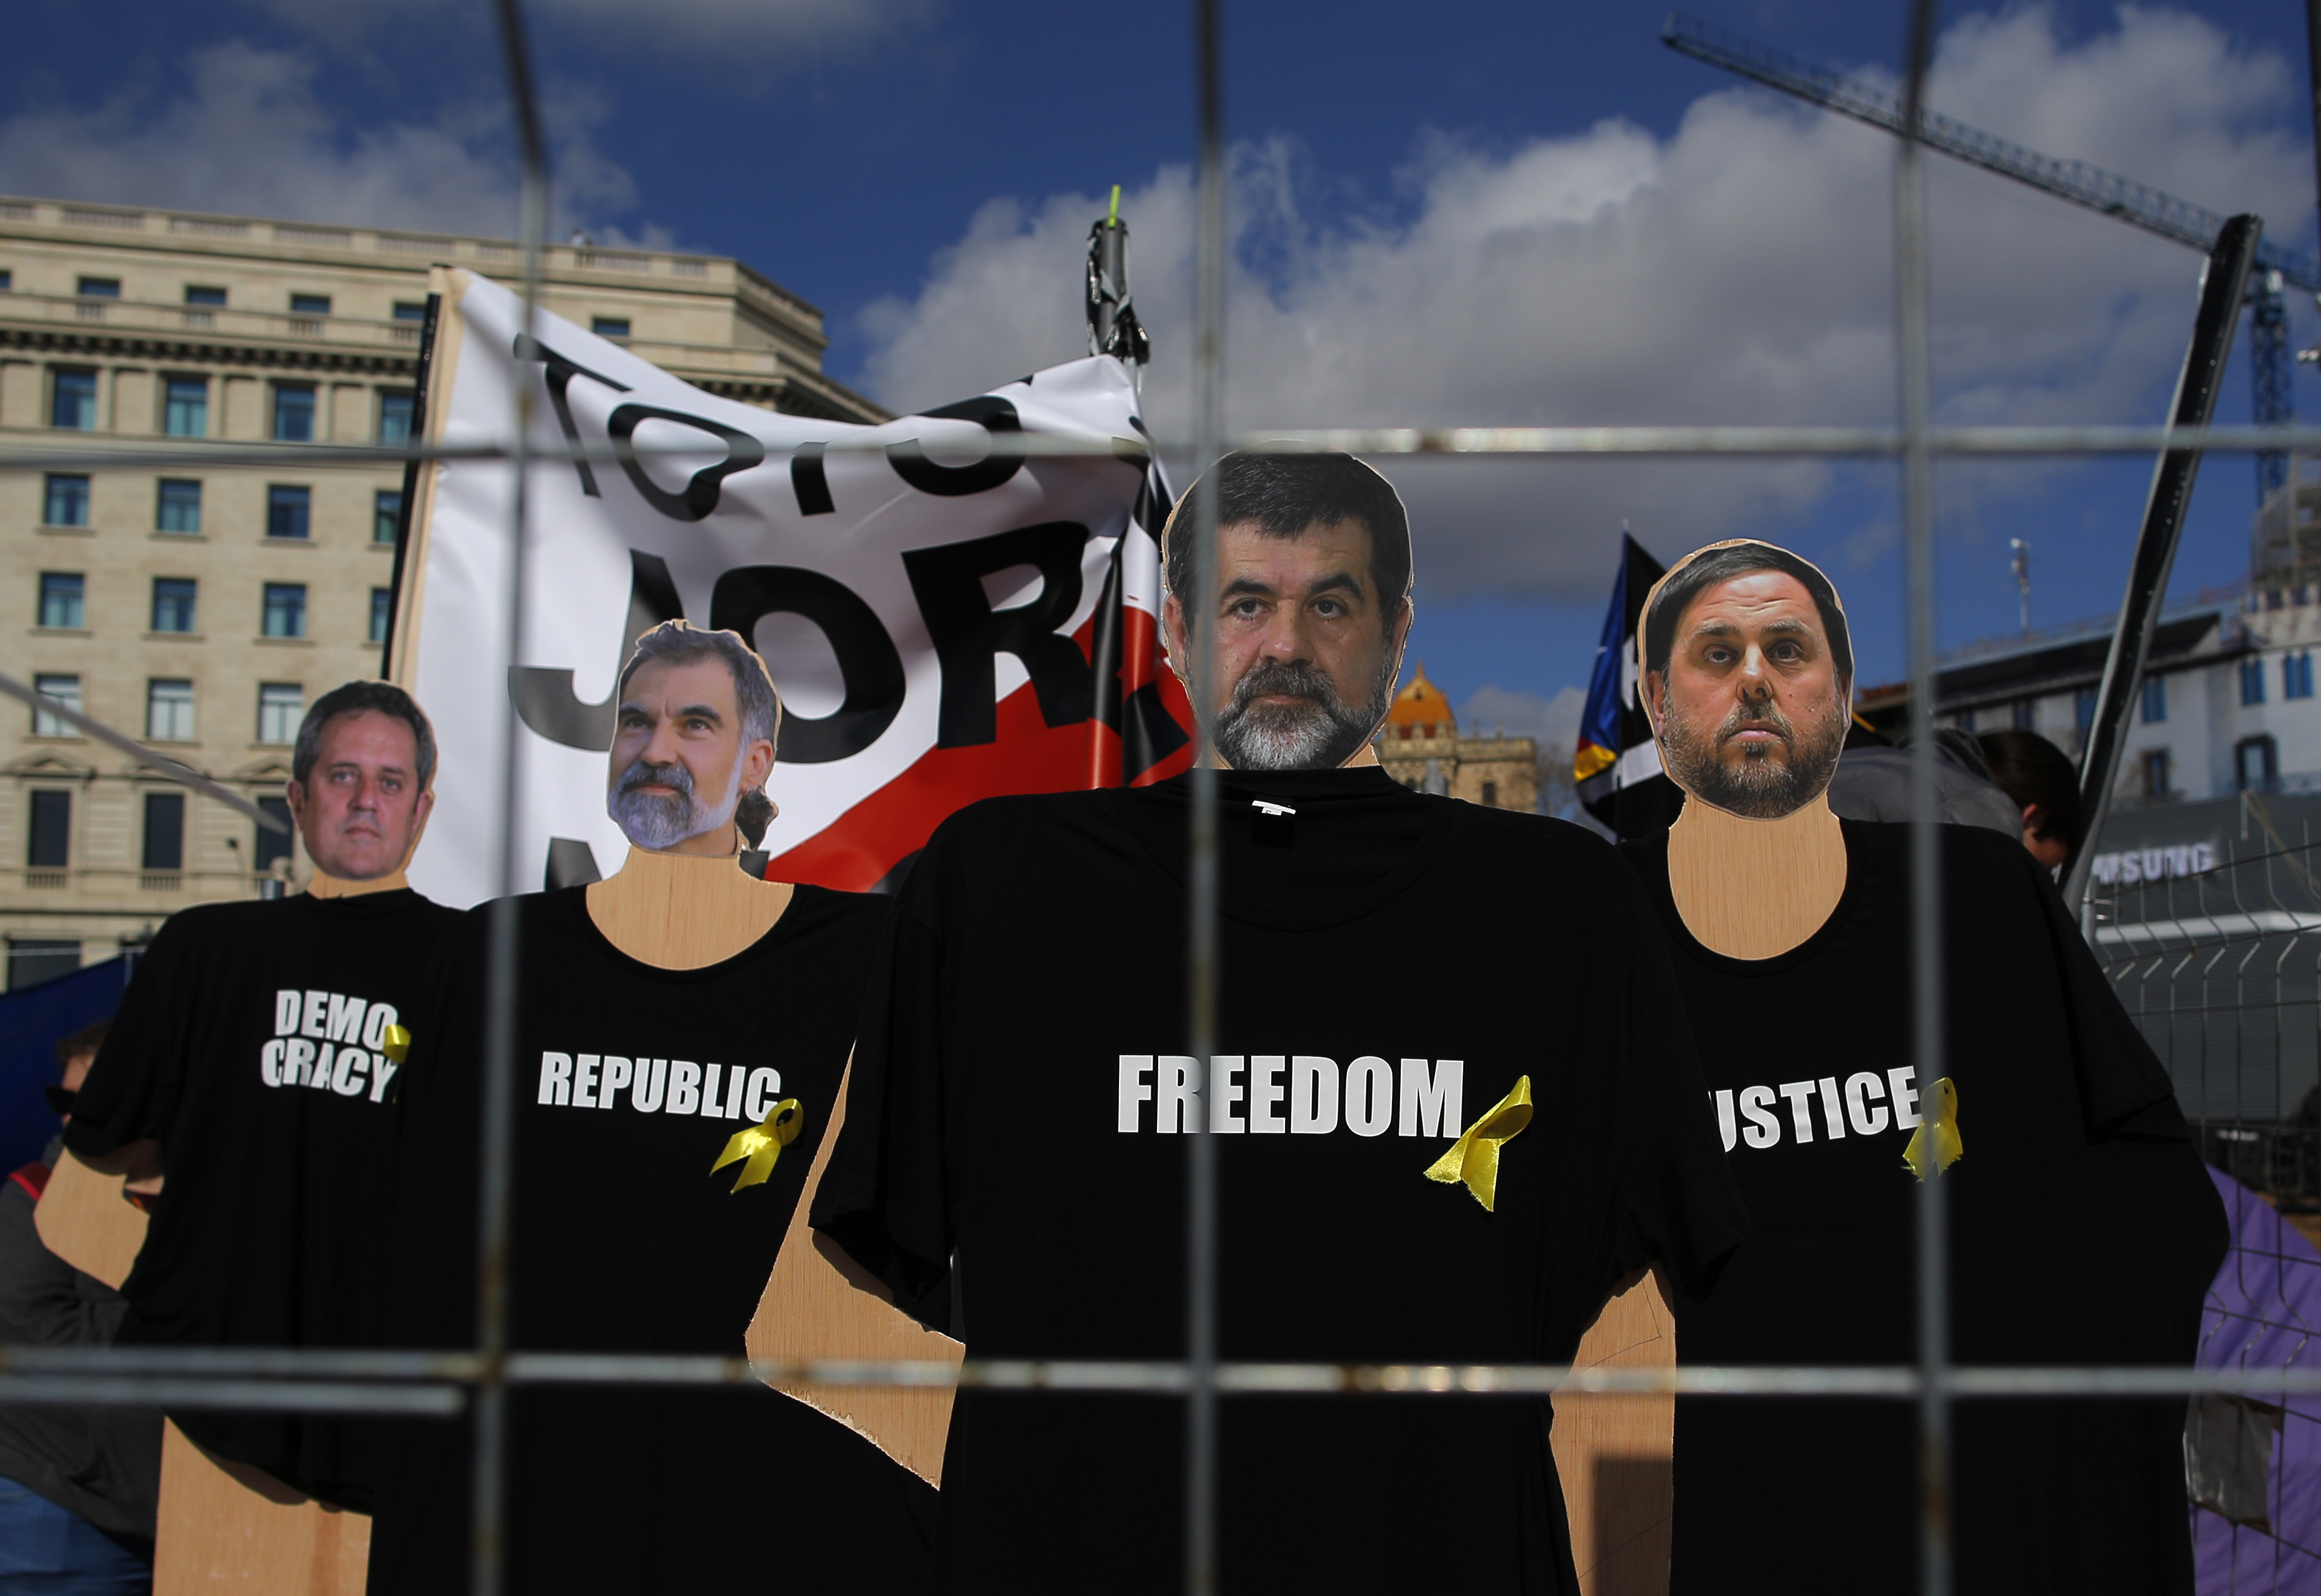 Pictures of the politicians imprisoned are displayed during a protest at the Catalunya square in Barcelona, Spain, Feb. 18, 2018.